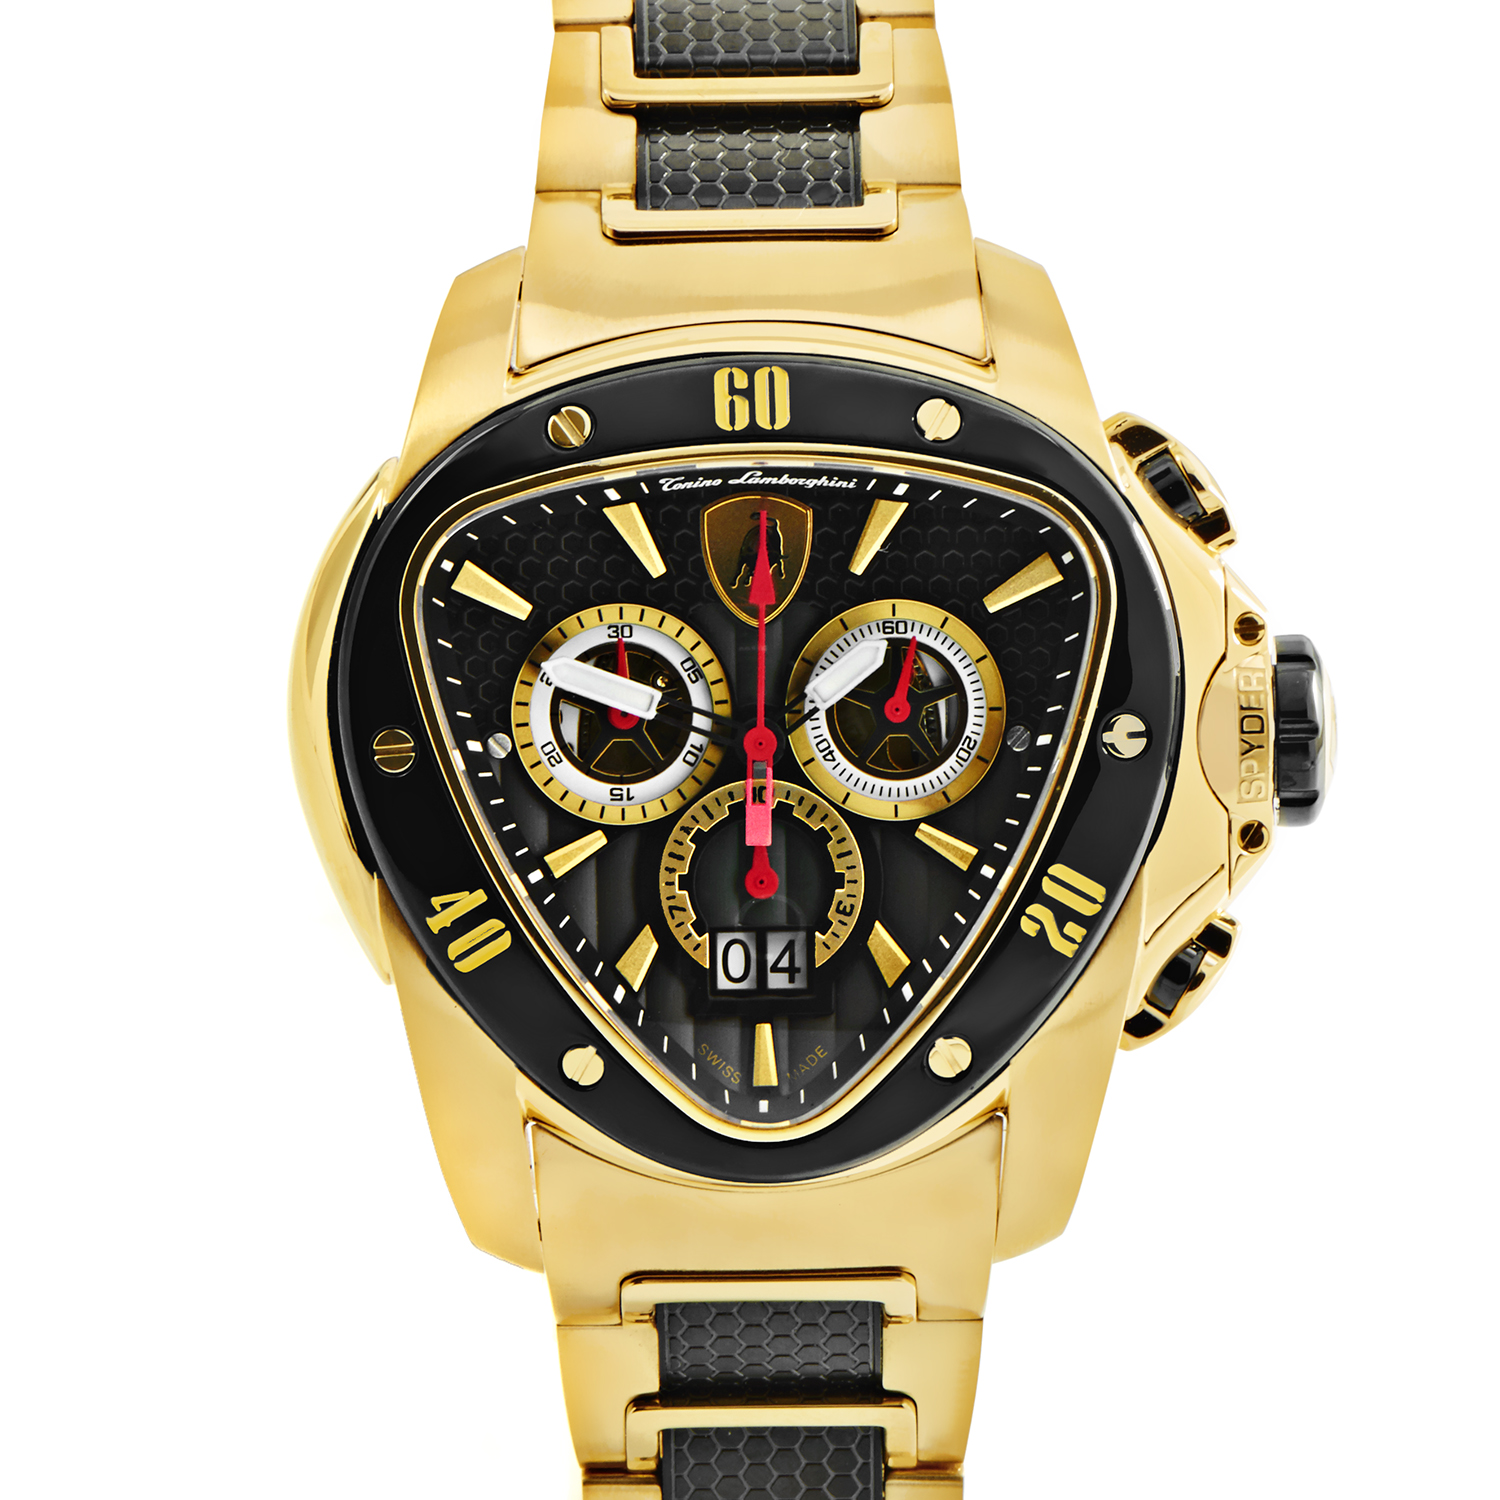 Men's Quartz Spyder Chronograph Watch 1100 1119